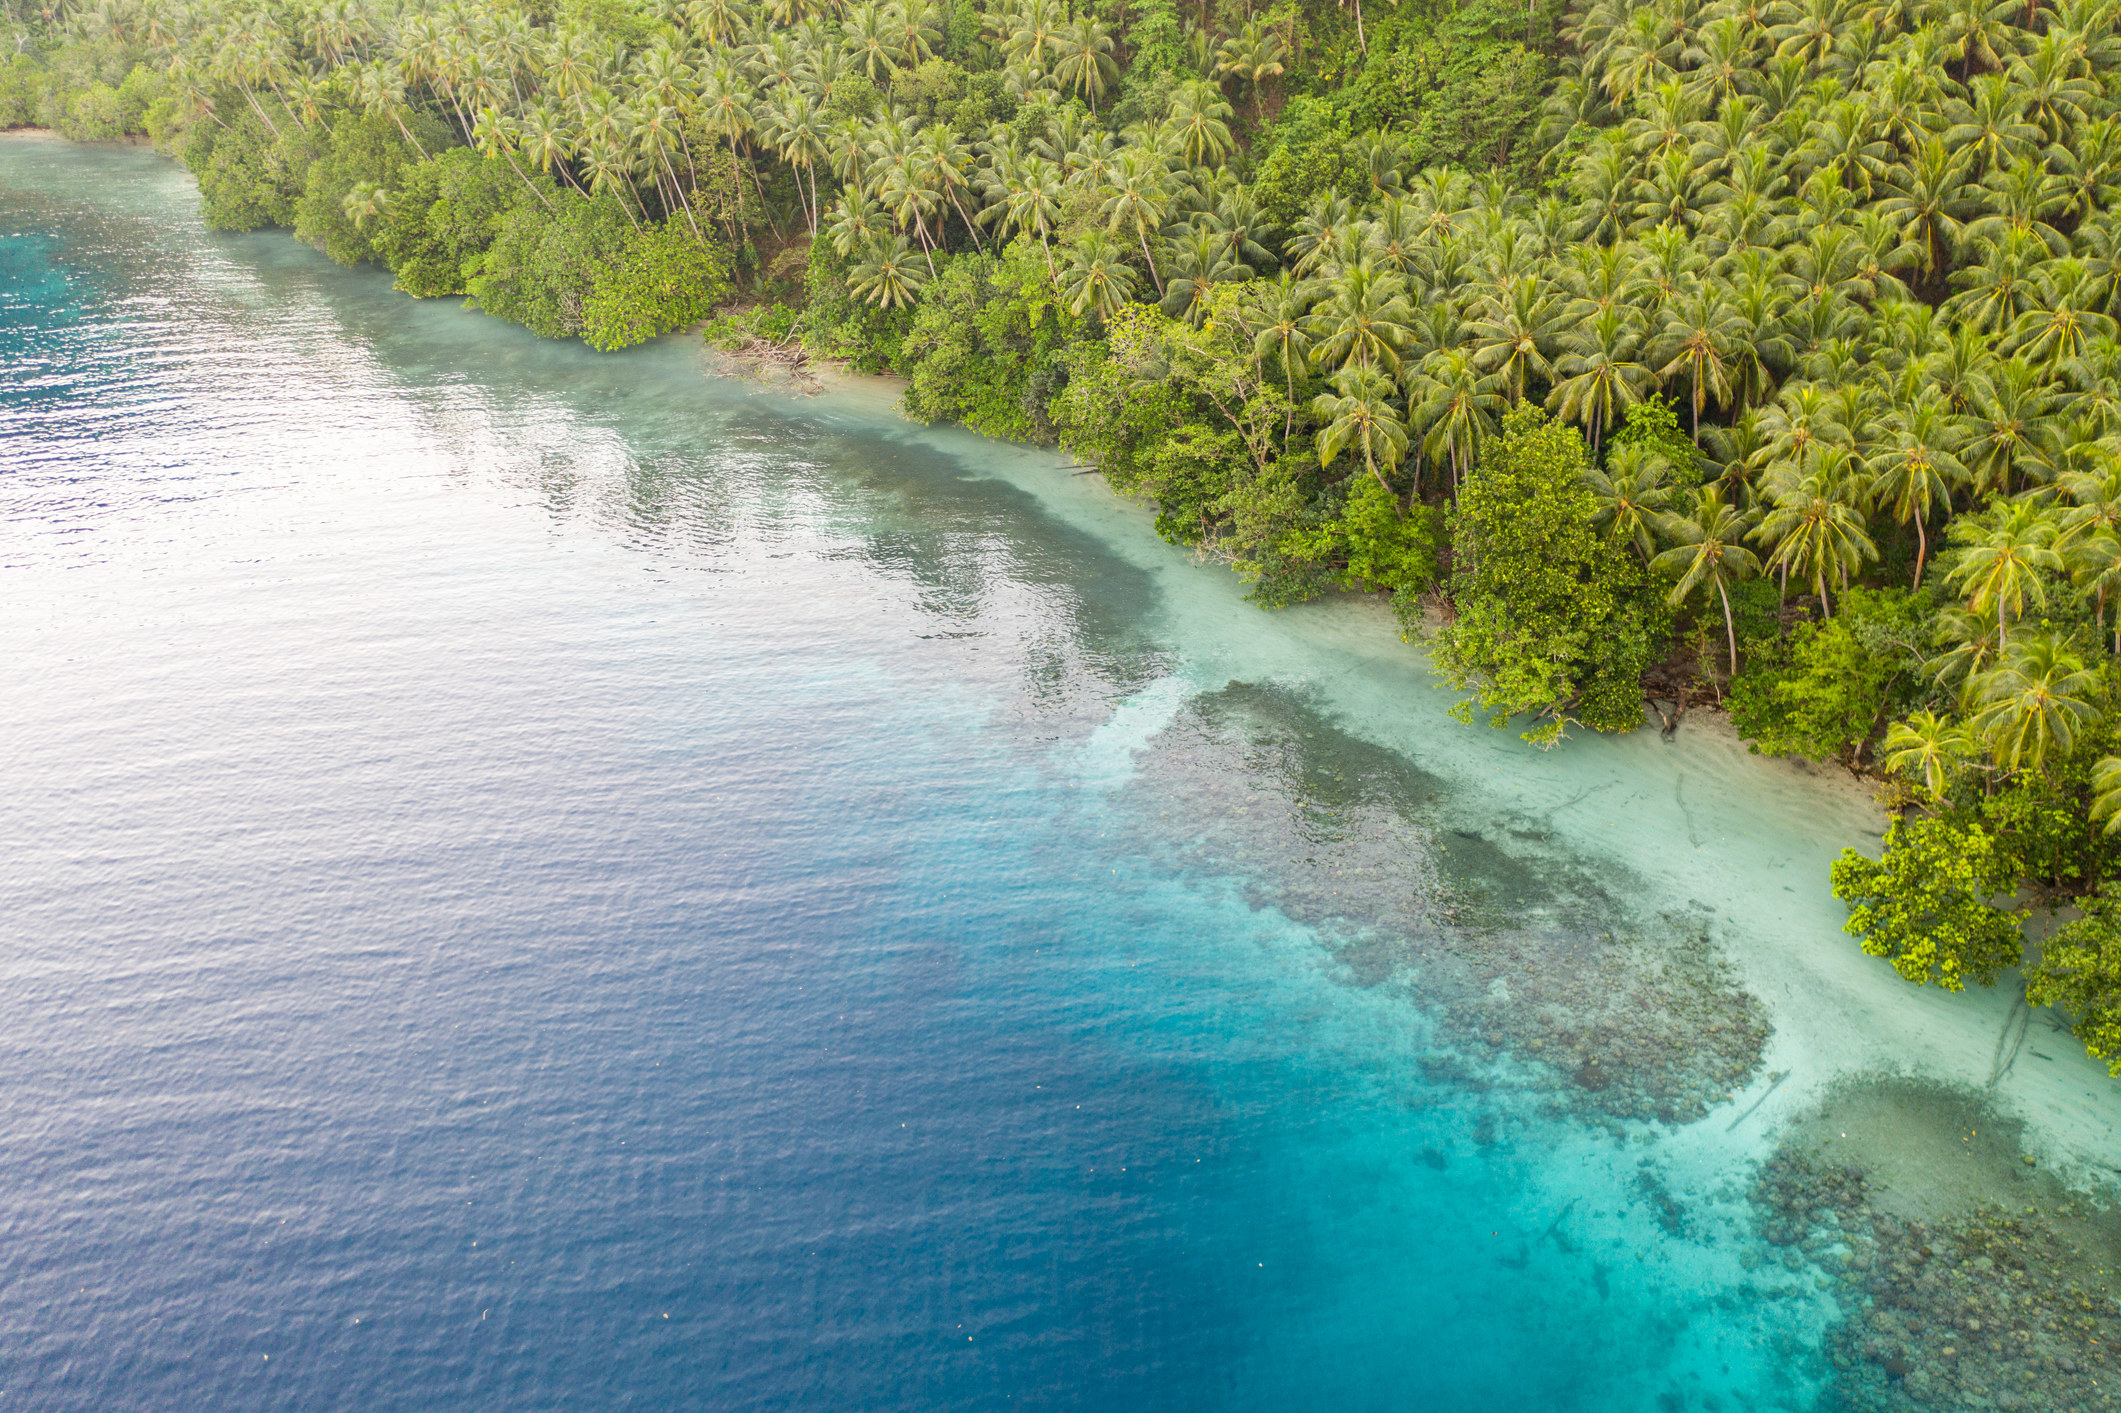 Drone shot of lear blue water and the coast of an island that is covered in dense jungle and palm trees